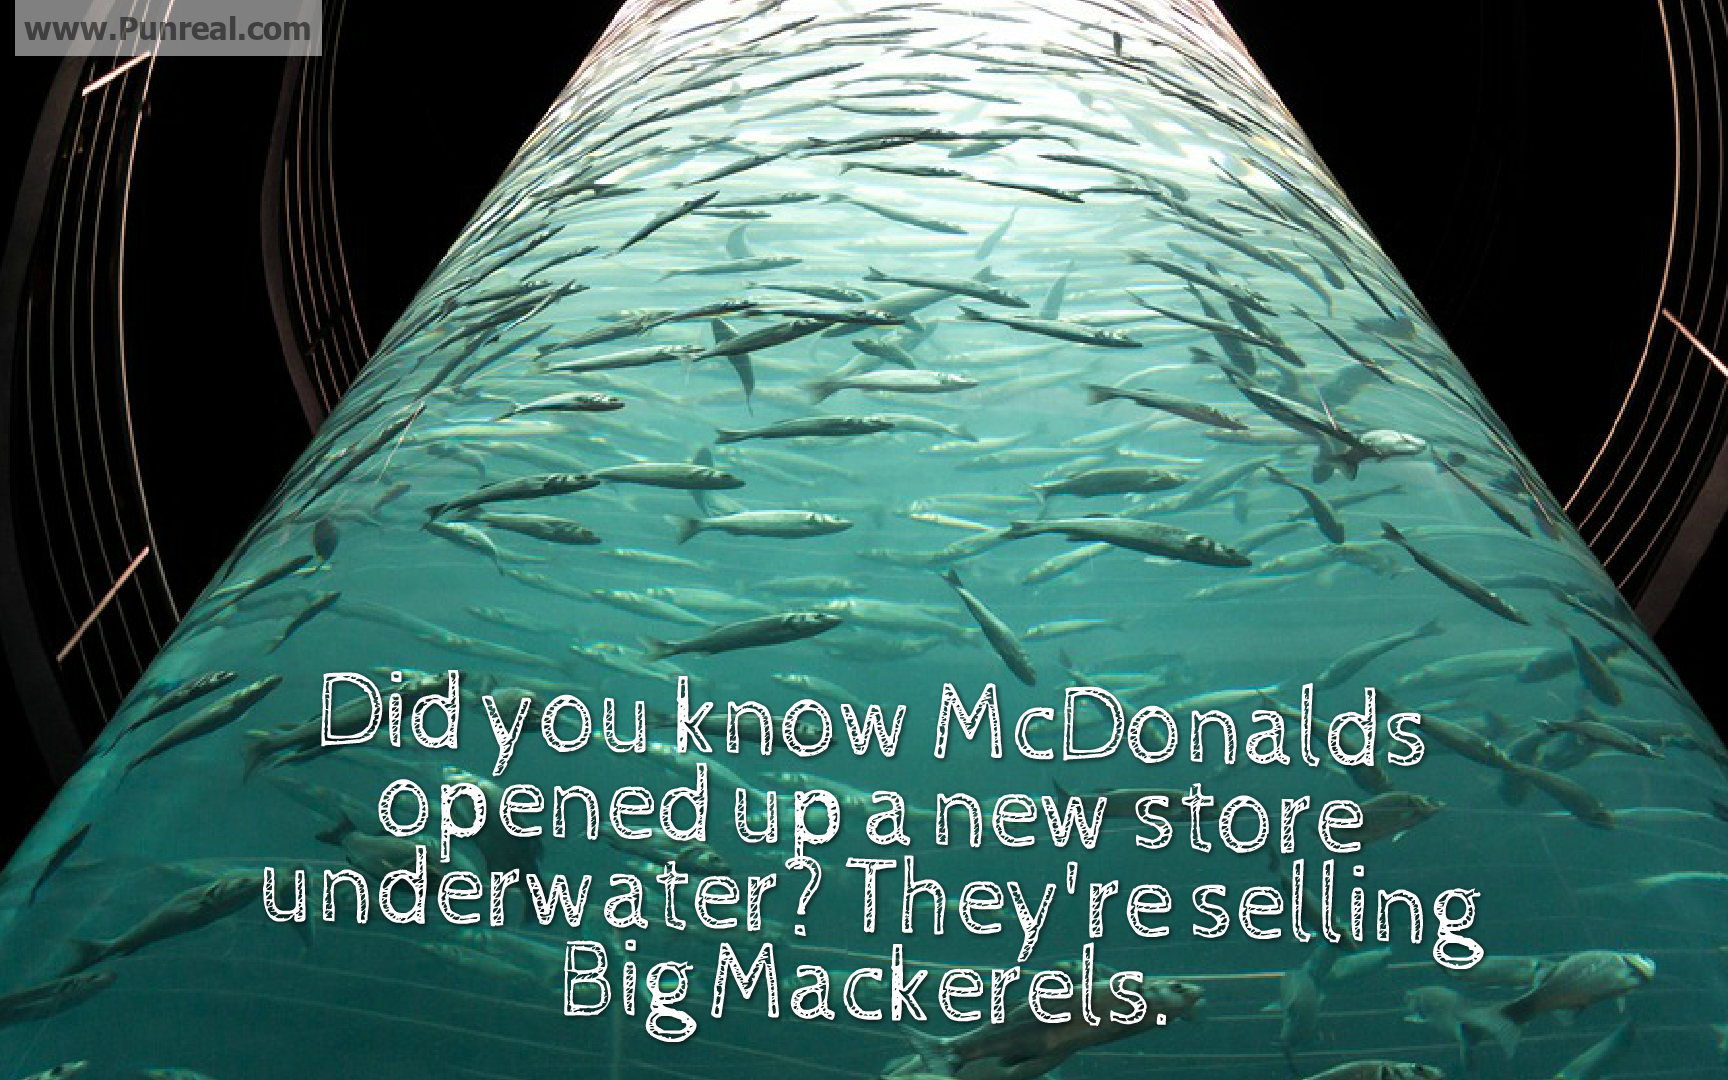 Did you know McDonalds is opening a store underwater to sell Big Mackerels?